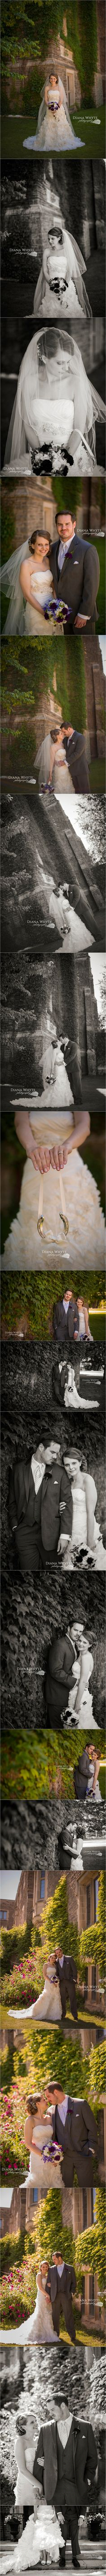 Hamilton Wedding Photographer Bridal portraits Diana Whyte Photography